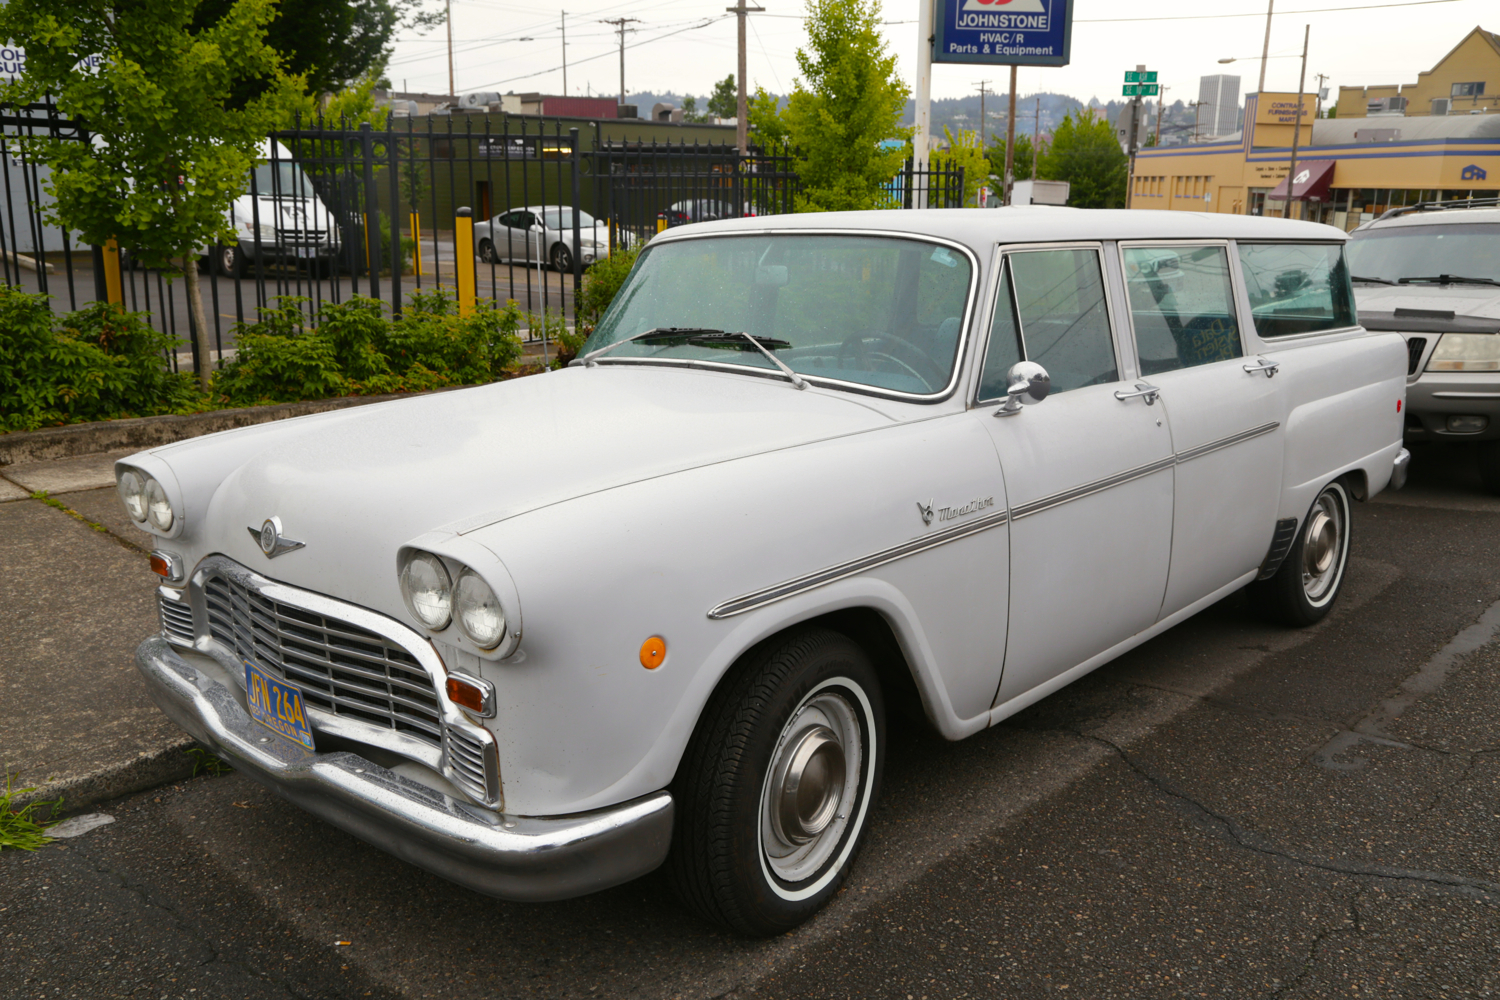 1970 Checker Marathon Wagon.